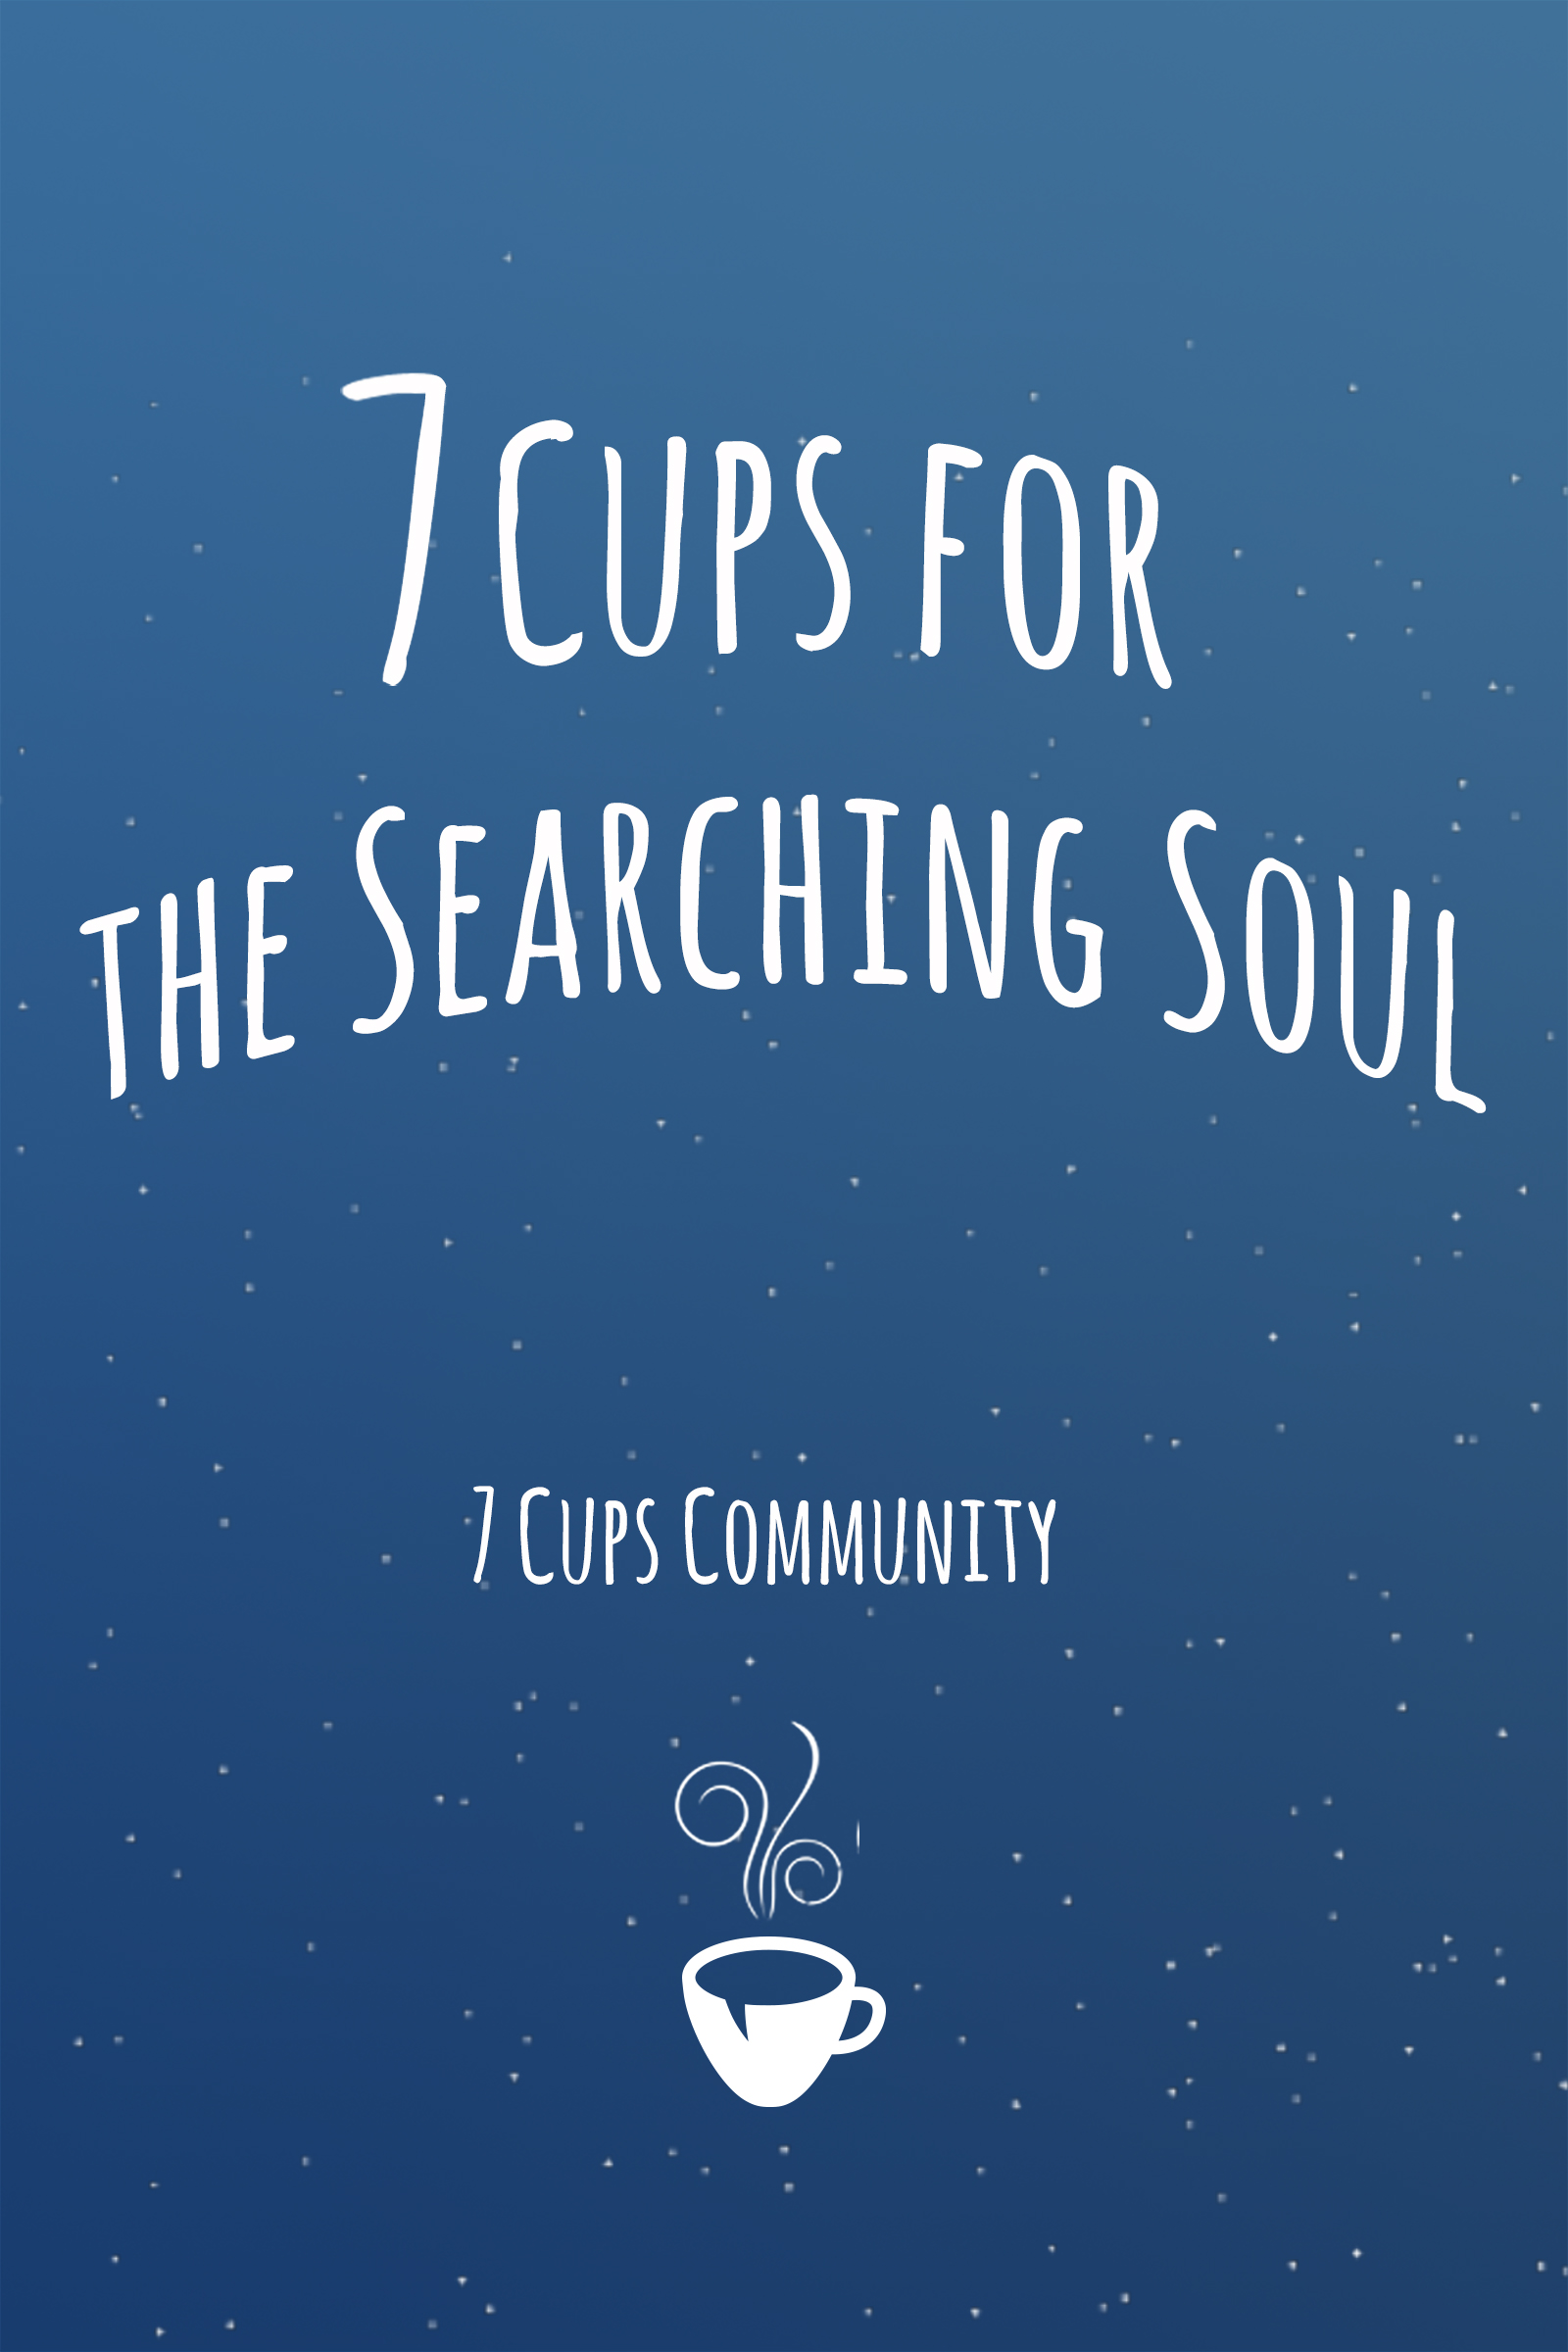 sites like 7cups